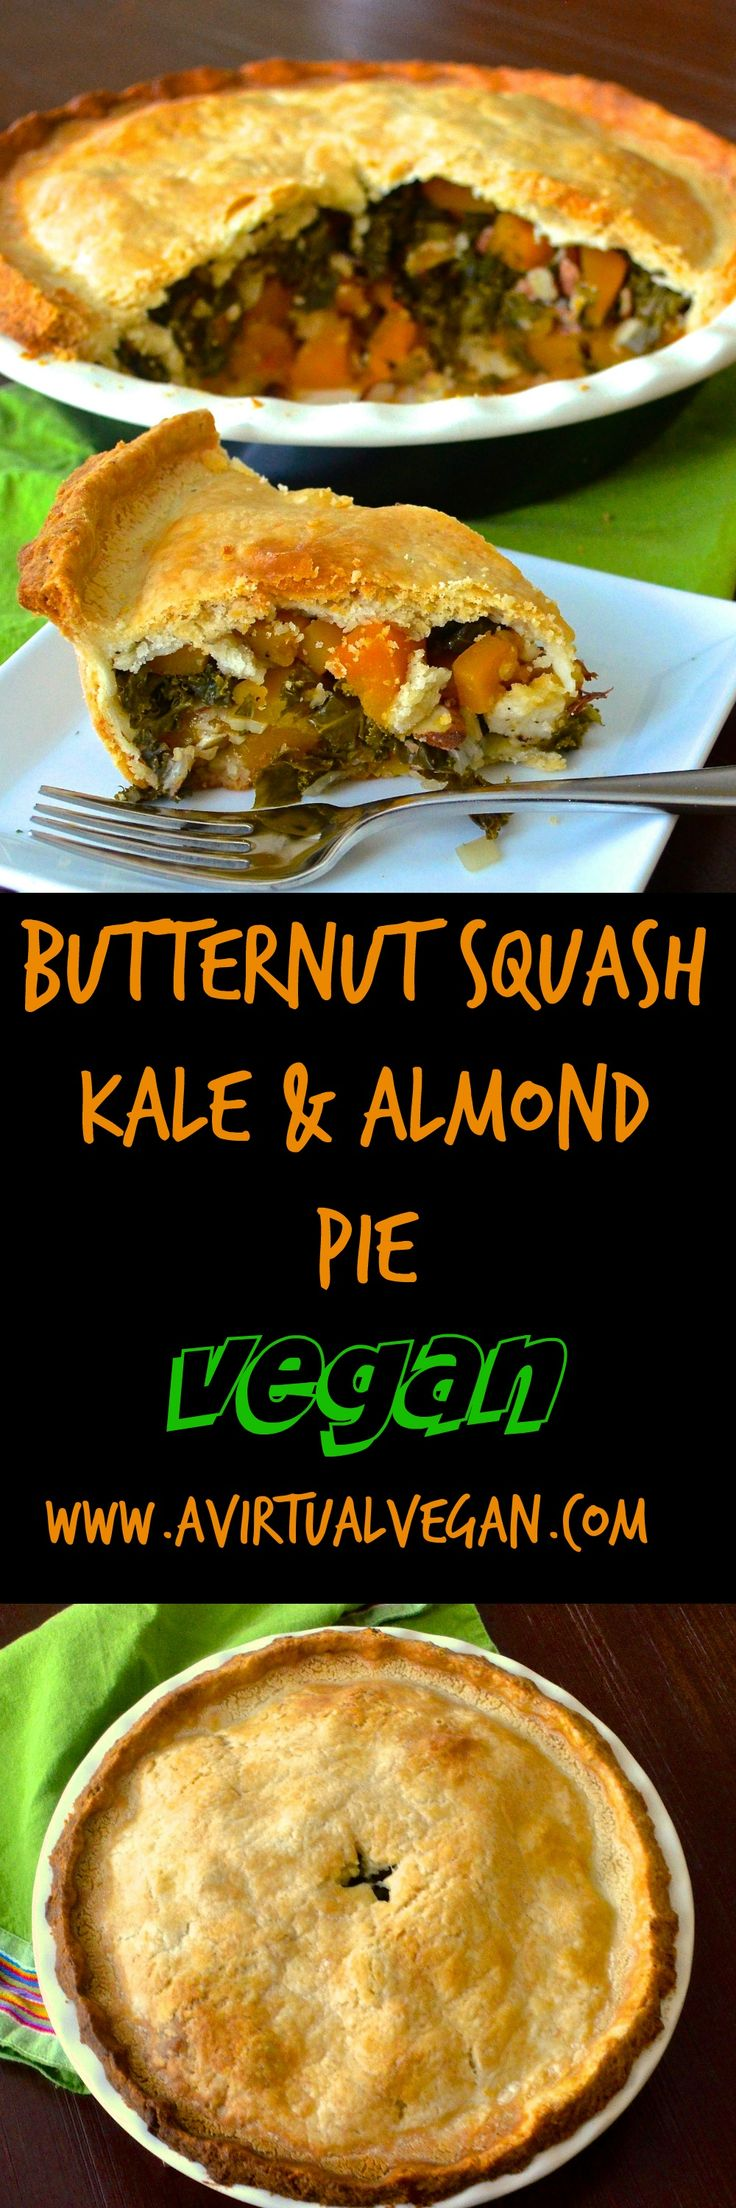 74 best vegan fall recipes images on pinterest vegan recipes flaky delicious pastry filled with sweet melt in your mouth butternut squash deep green earthy kale crunchy almonds only 6 ingredients and the forumfinder Choice Image